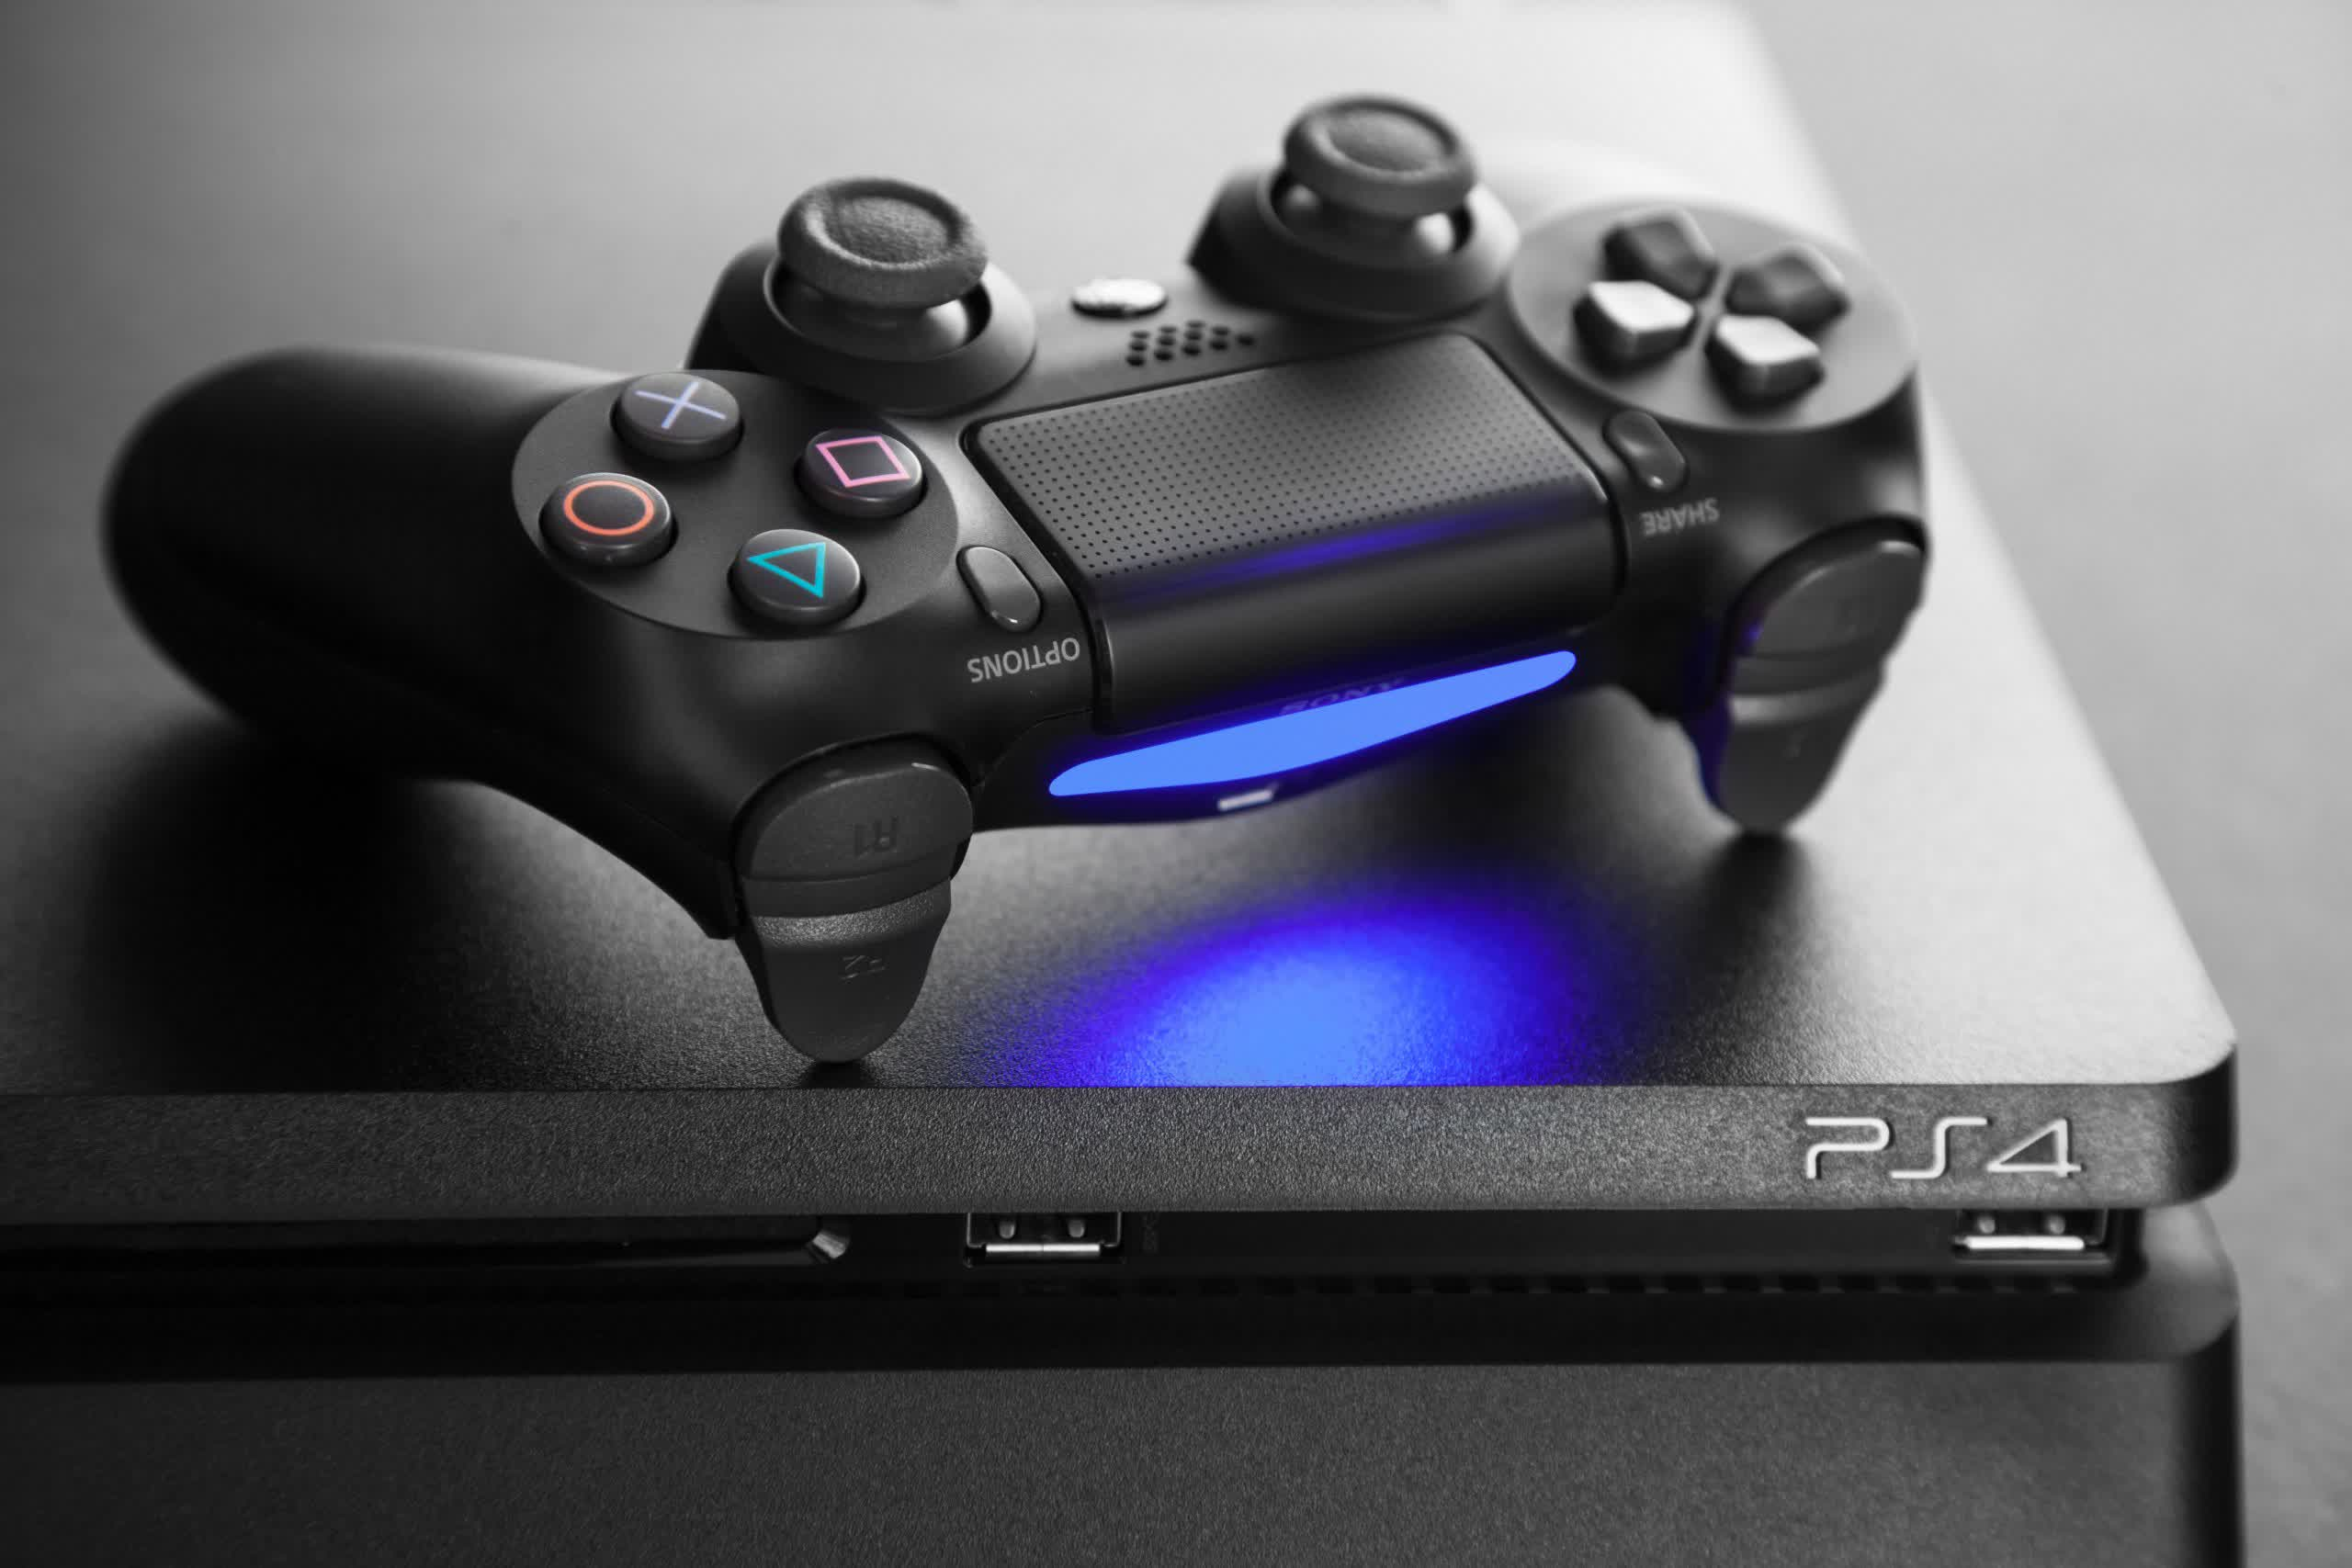 Sony partially discontinued PlayStation 4 production in Japan